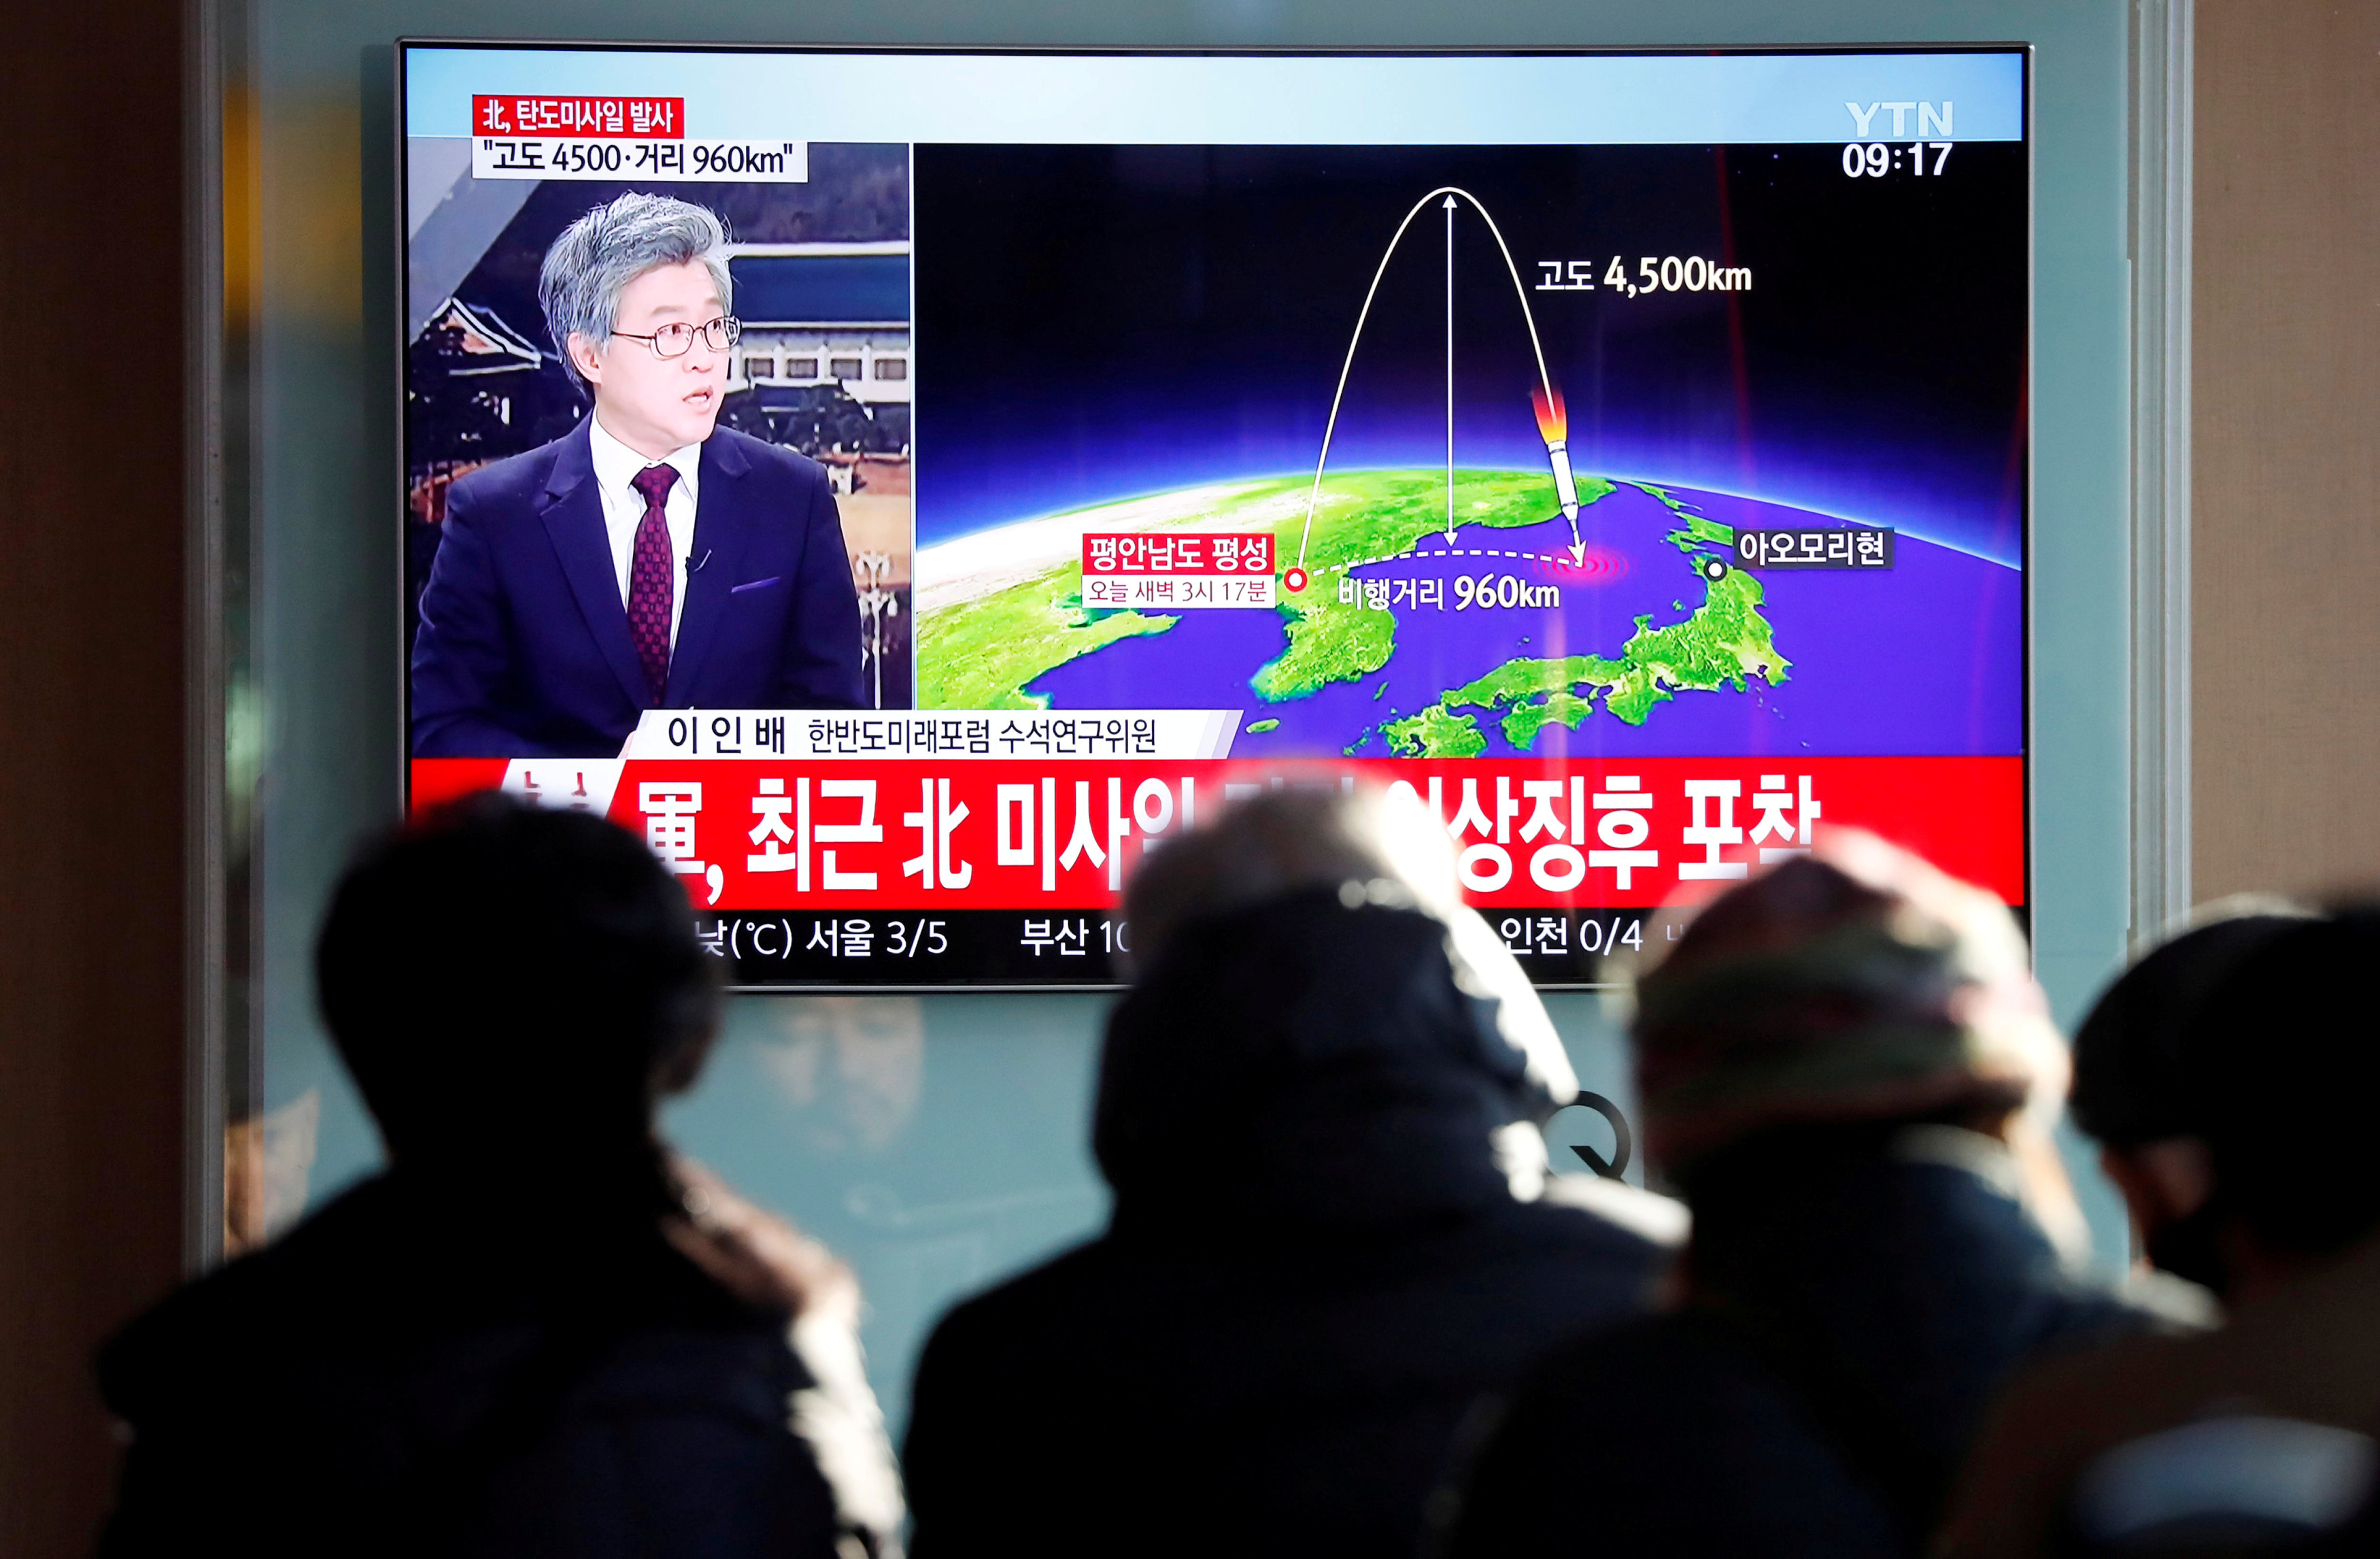 In pictures: North Korea new missile launch